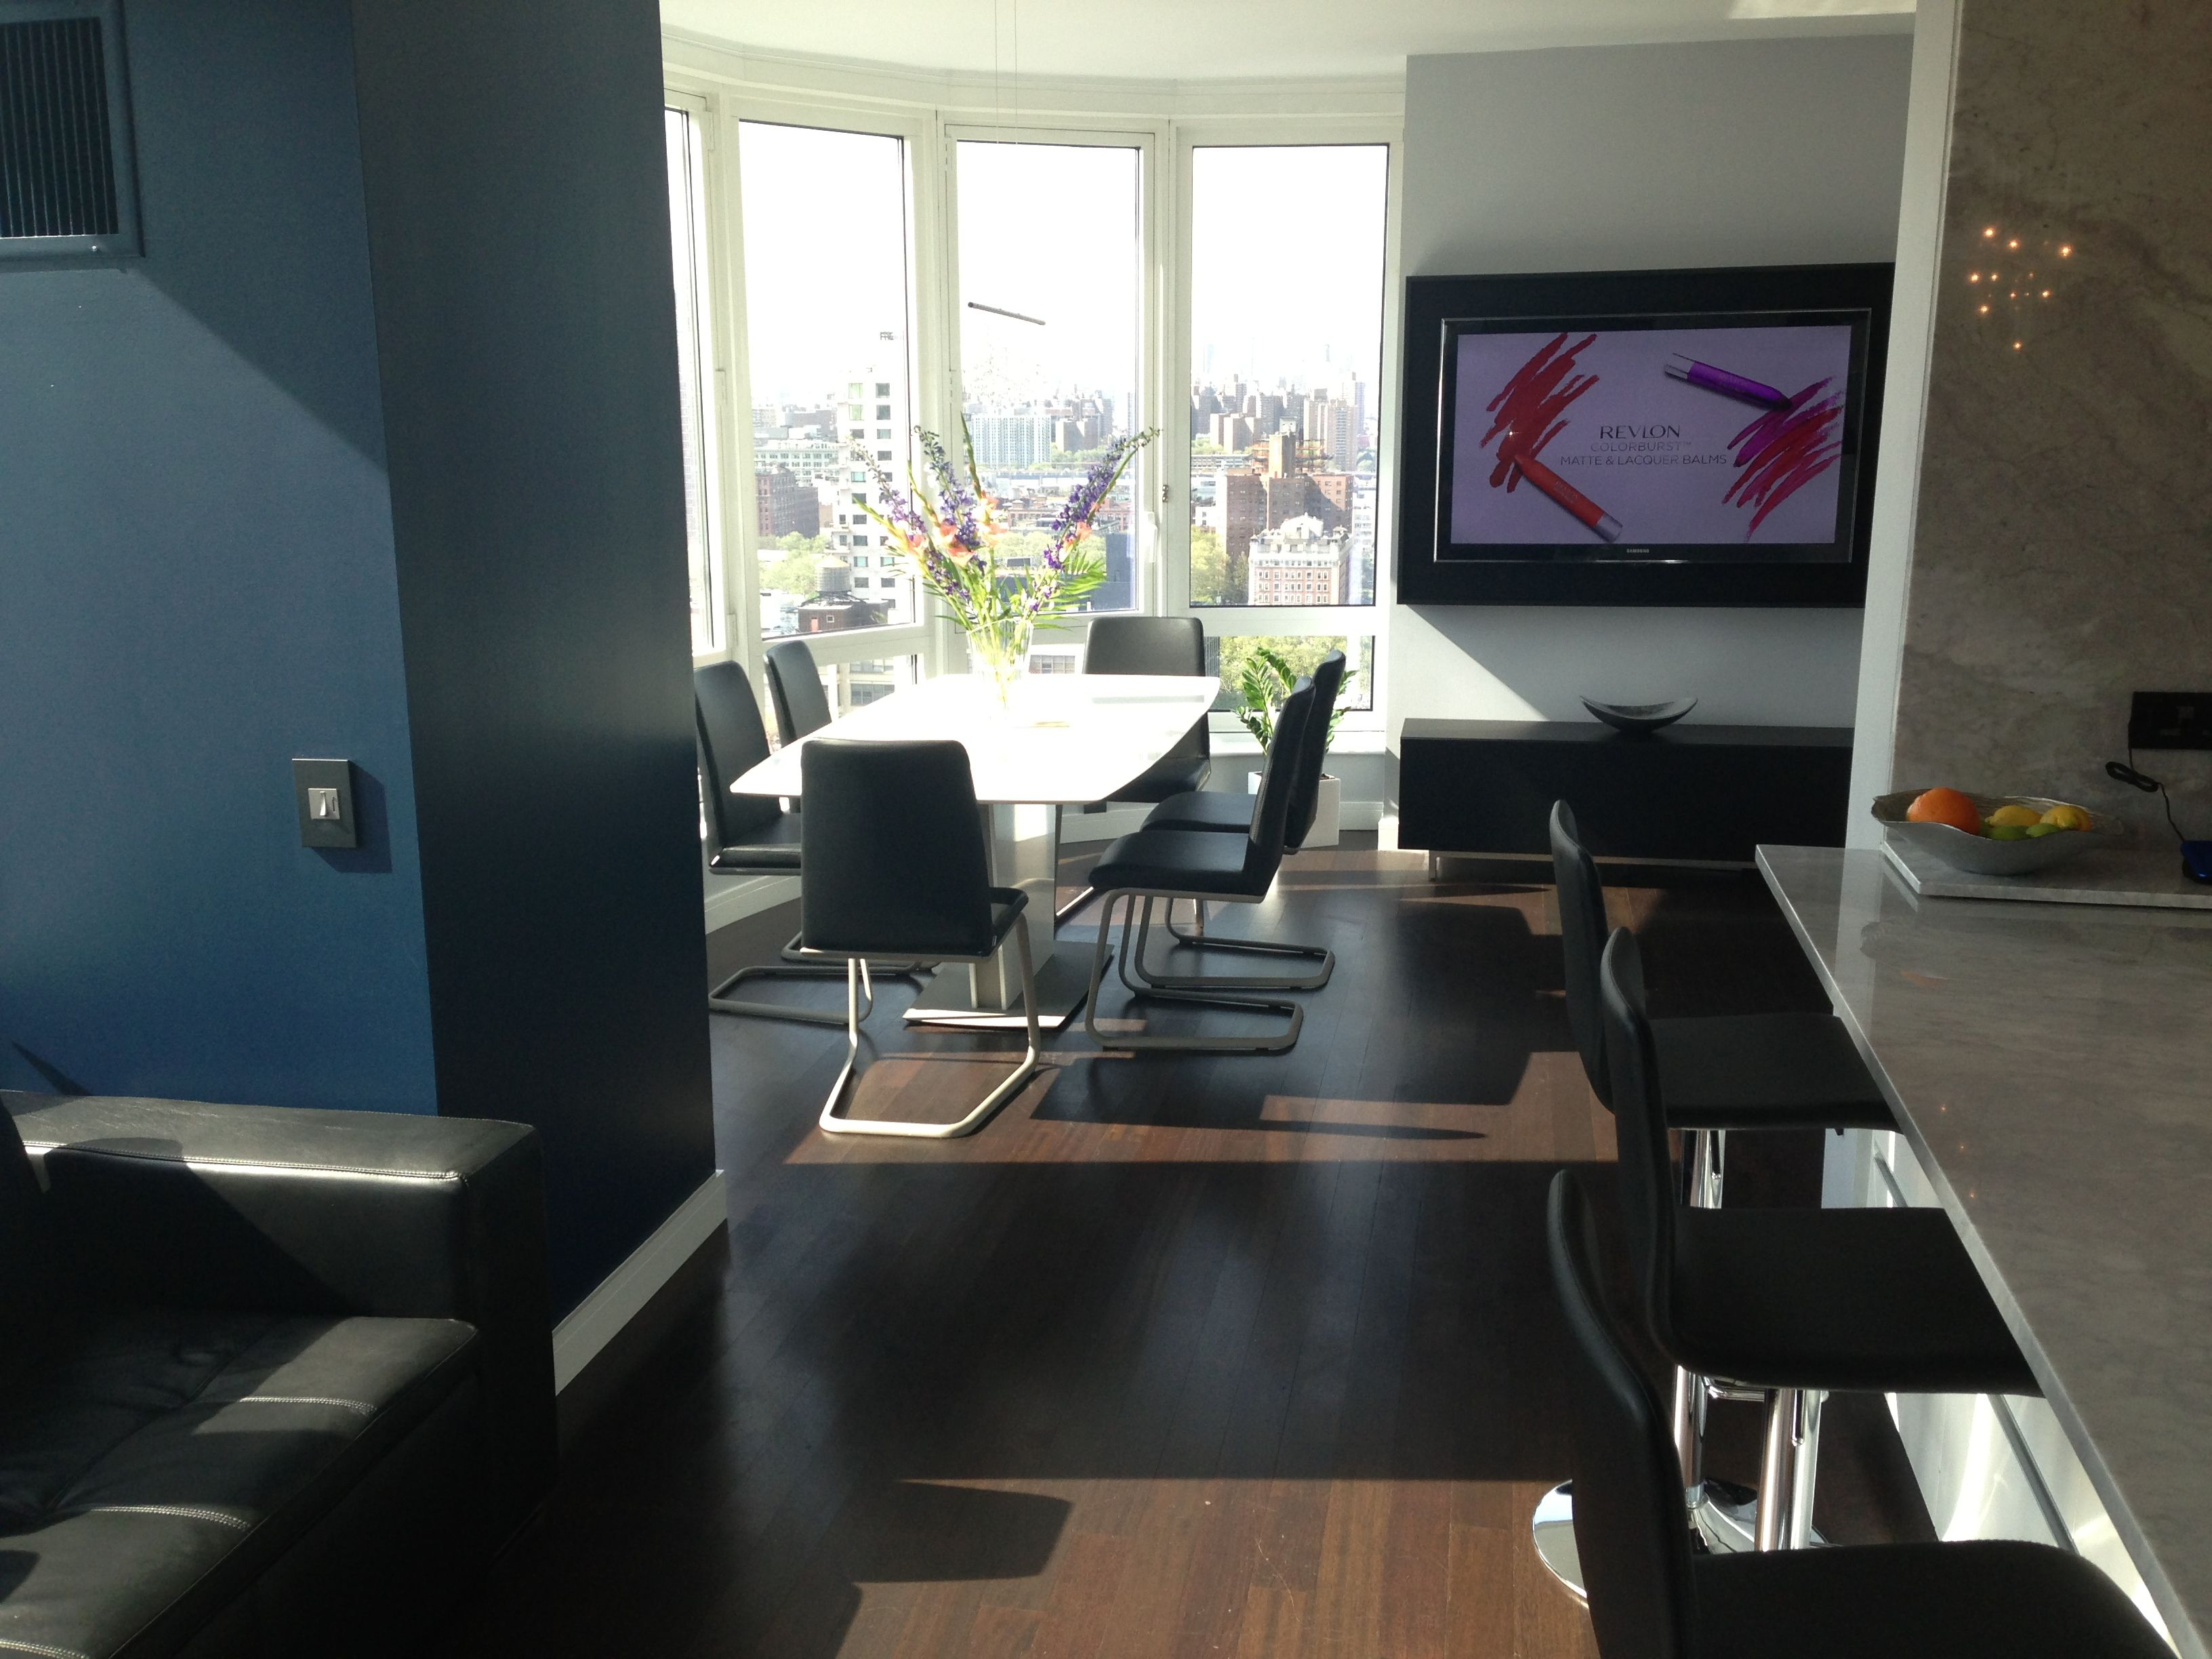 Boconcept Sienna Barstools Occa Extendable Table And Lausanne Chairs On A Condo In Downtown Brooklyn Ny